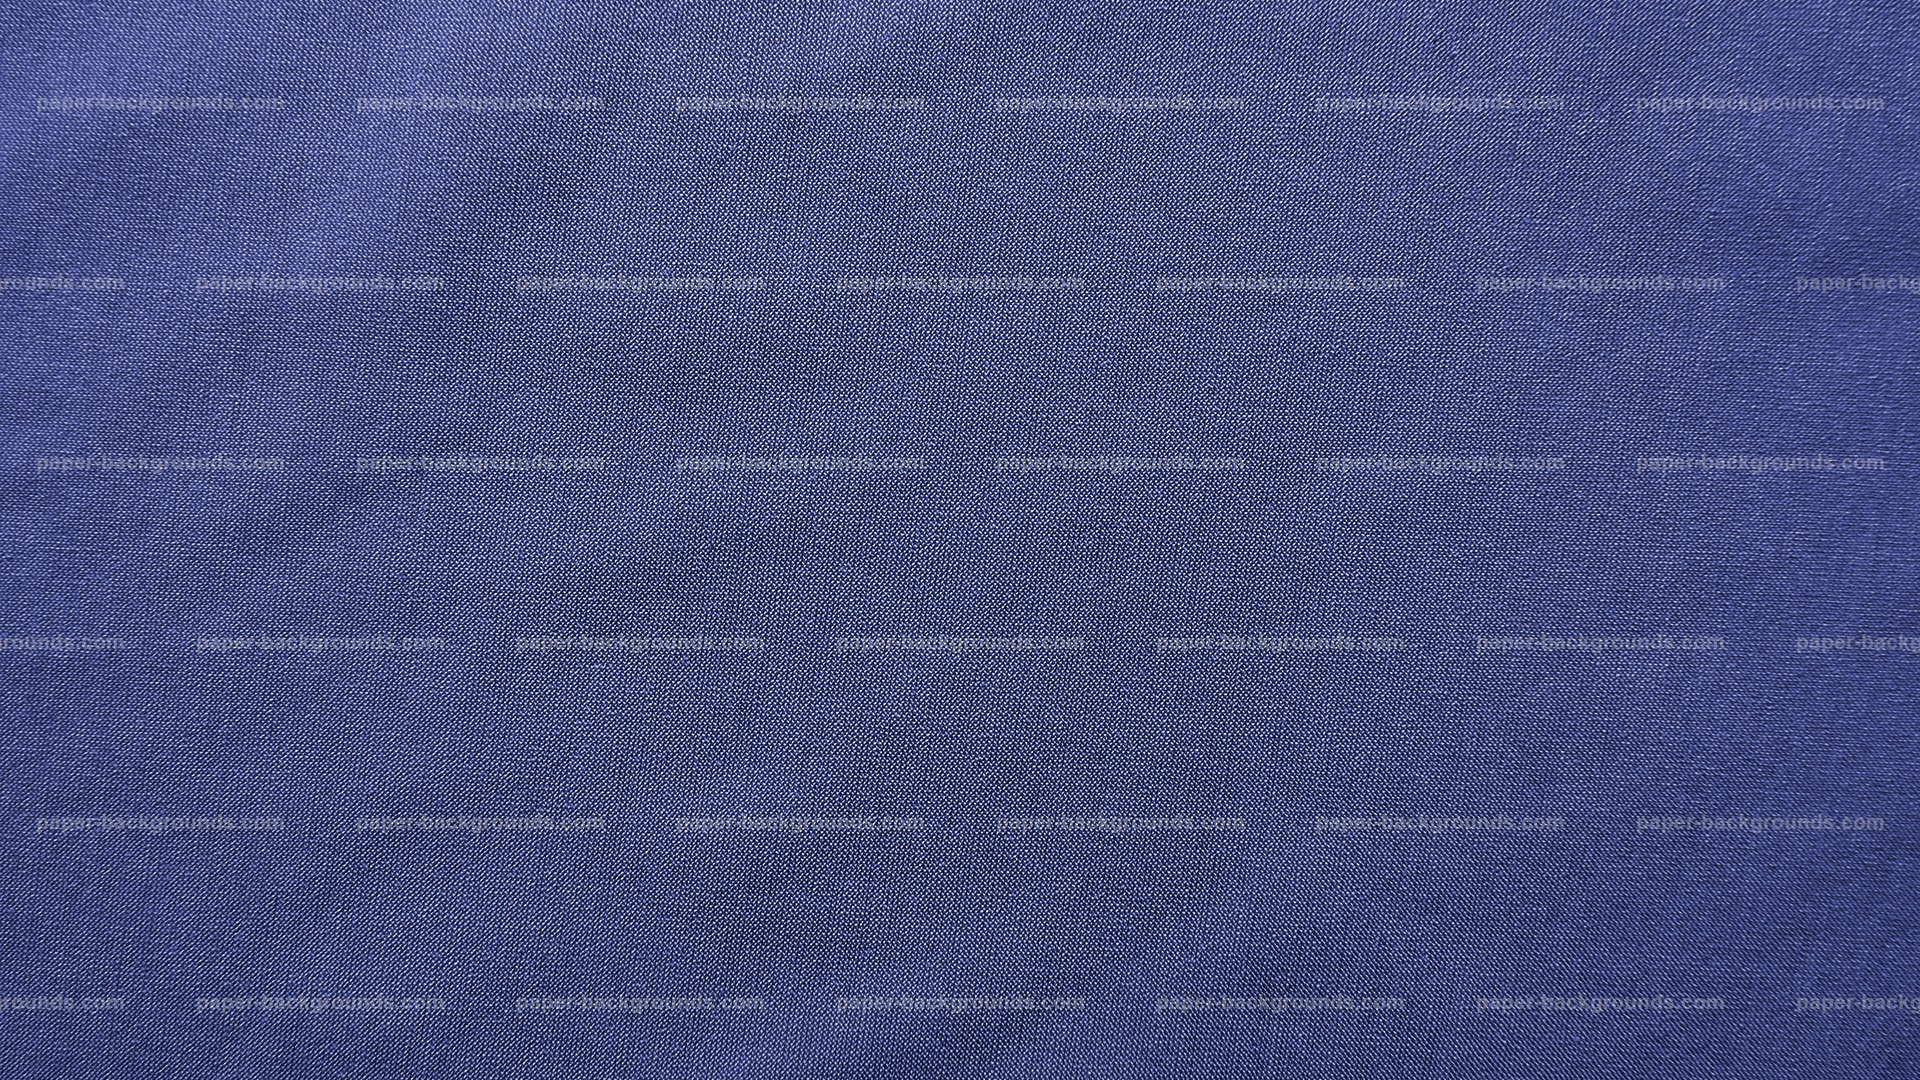 Blue Canvas Texture Background HD